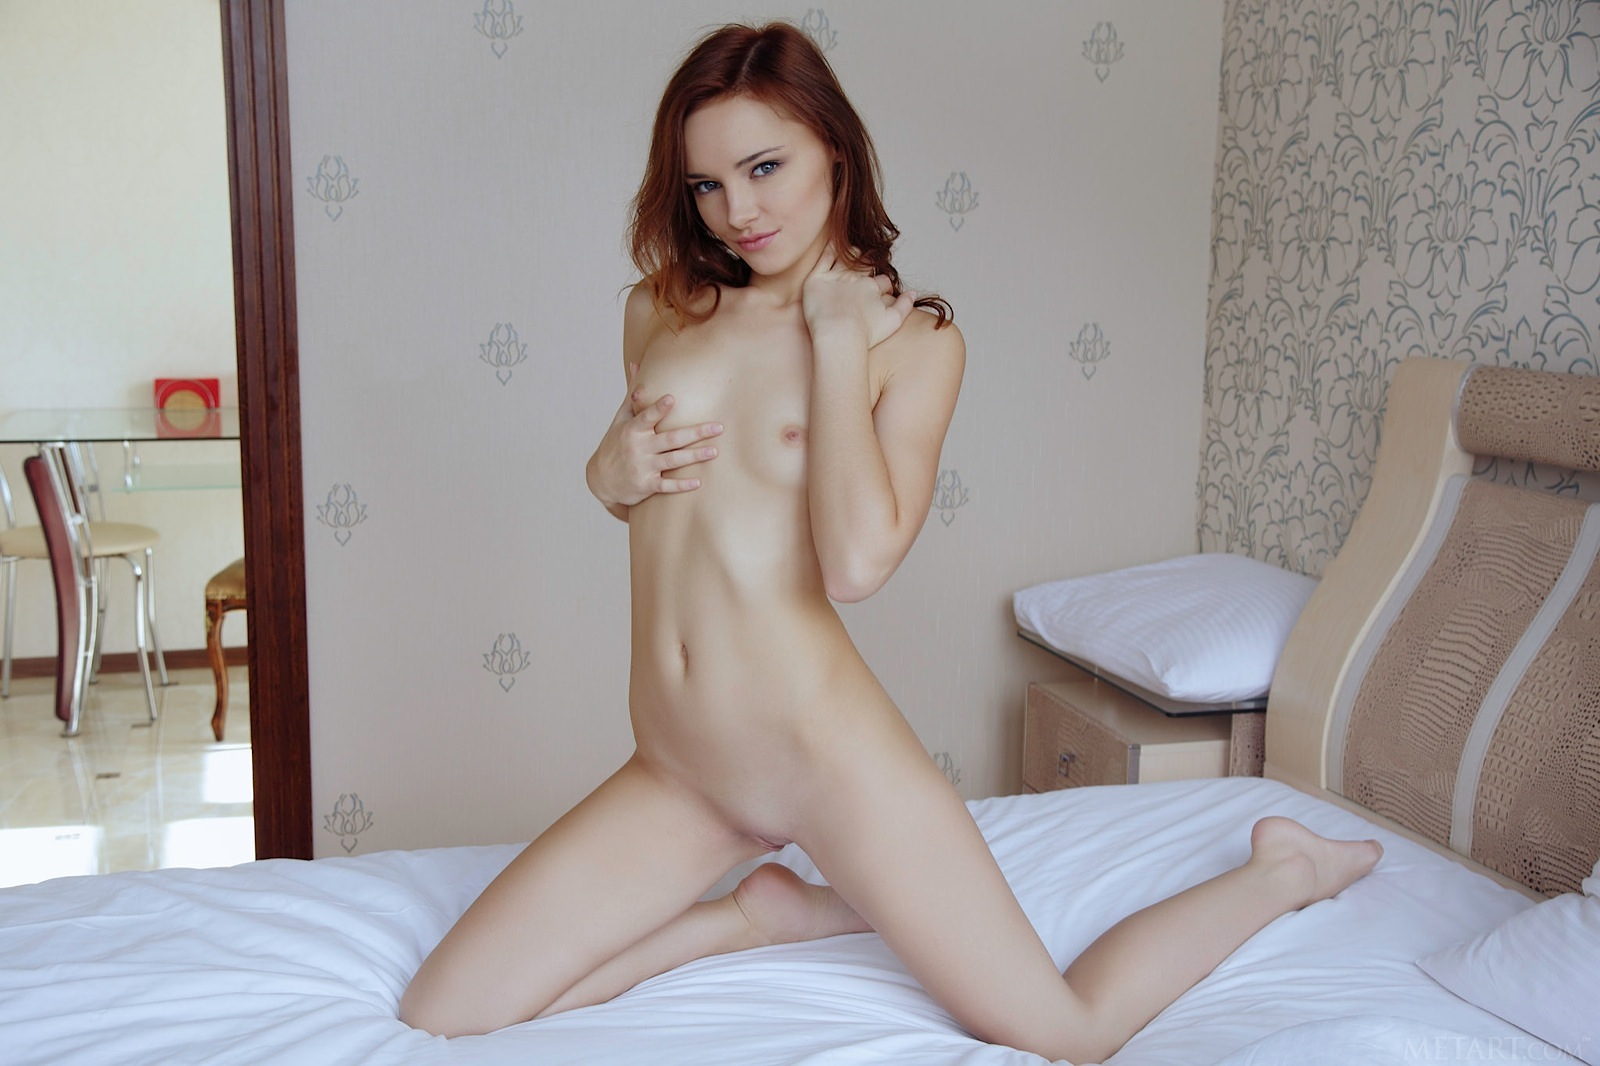 nude girl with pigtails spread